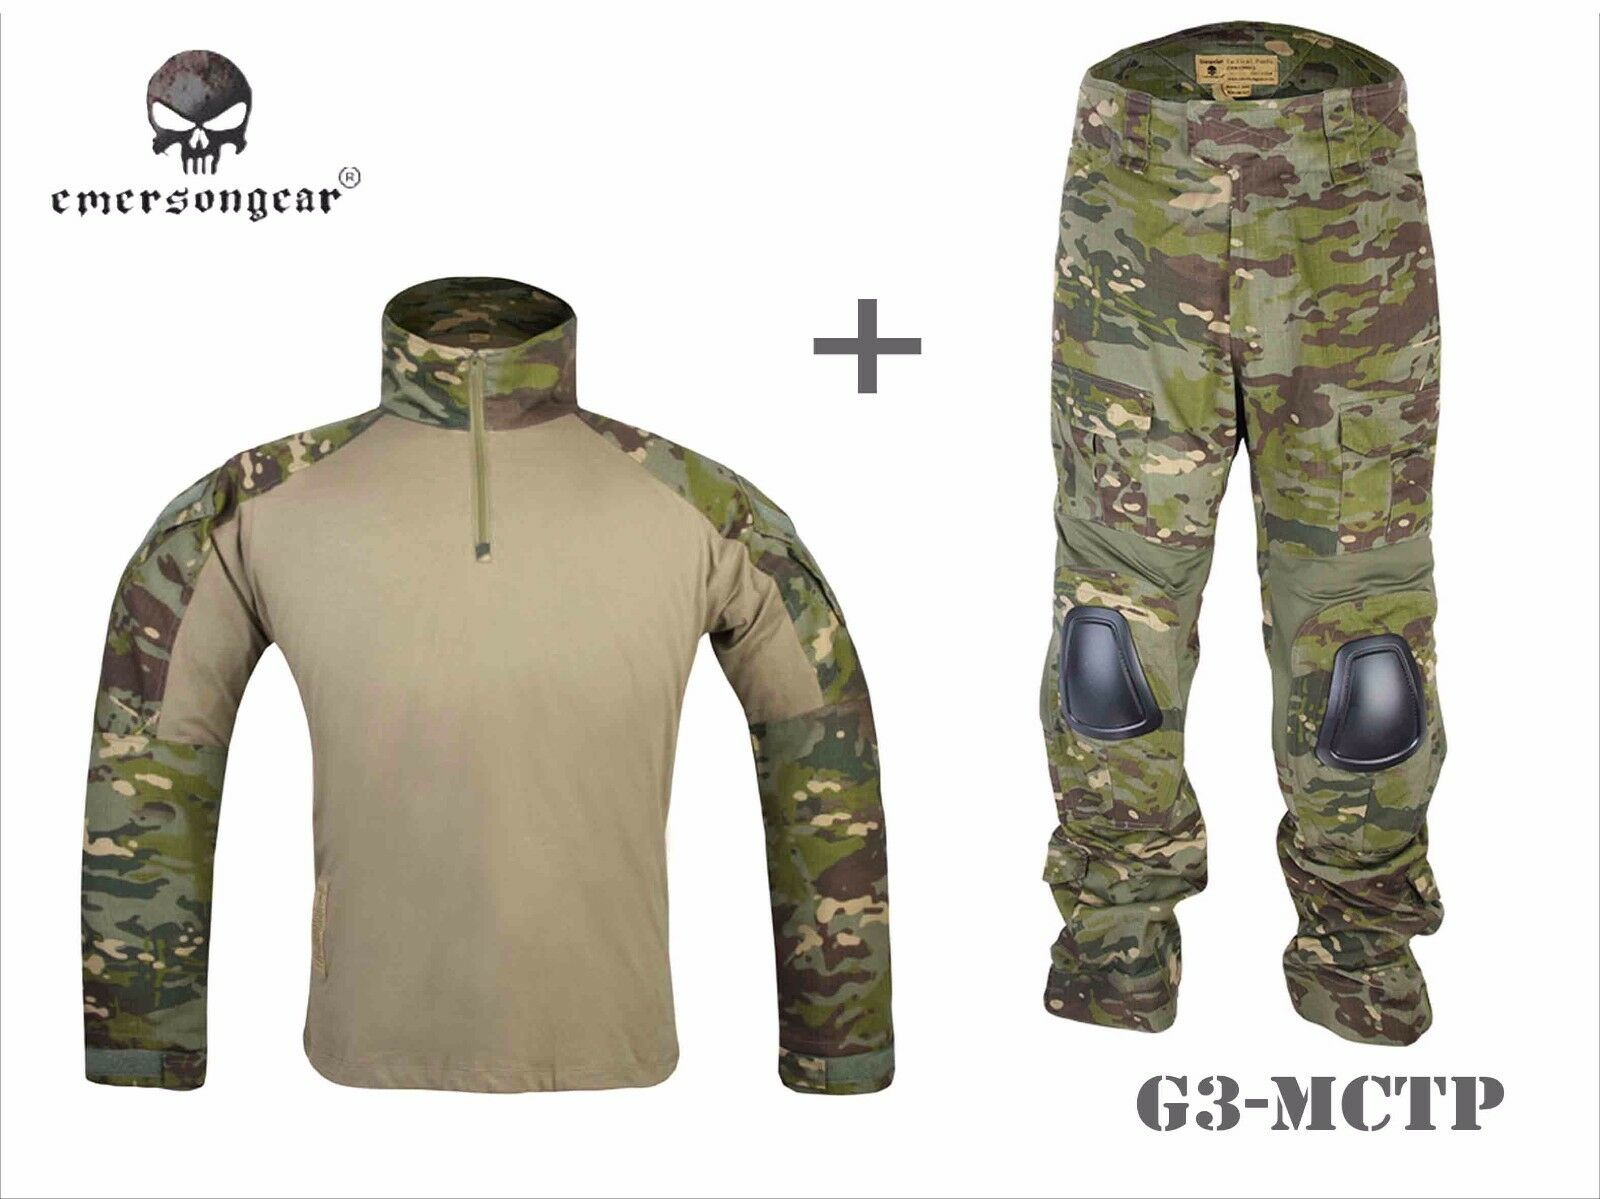 Emerson Airsoft Hunting  Uniform BDU Combat Tactical G3 Uniform and Knee Pad MCTP  incentive promotionals